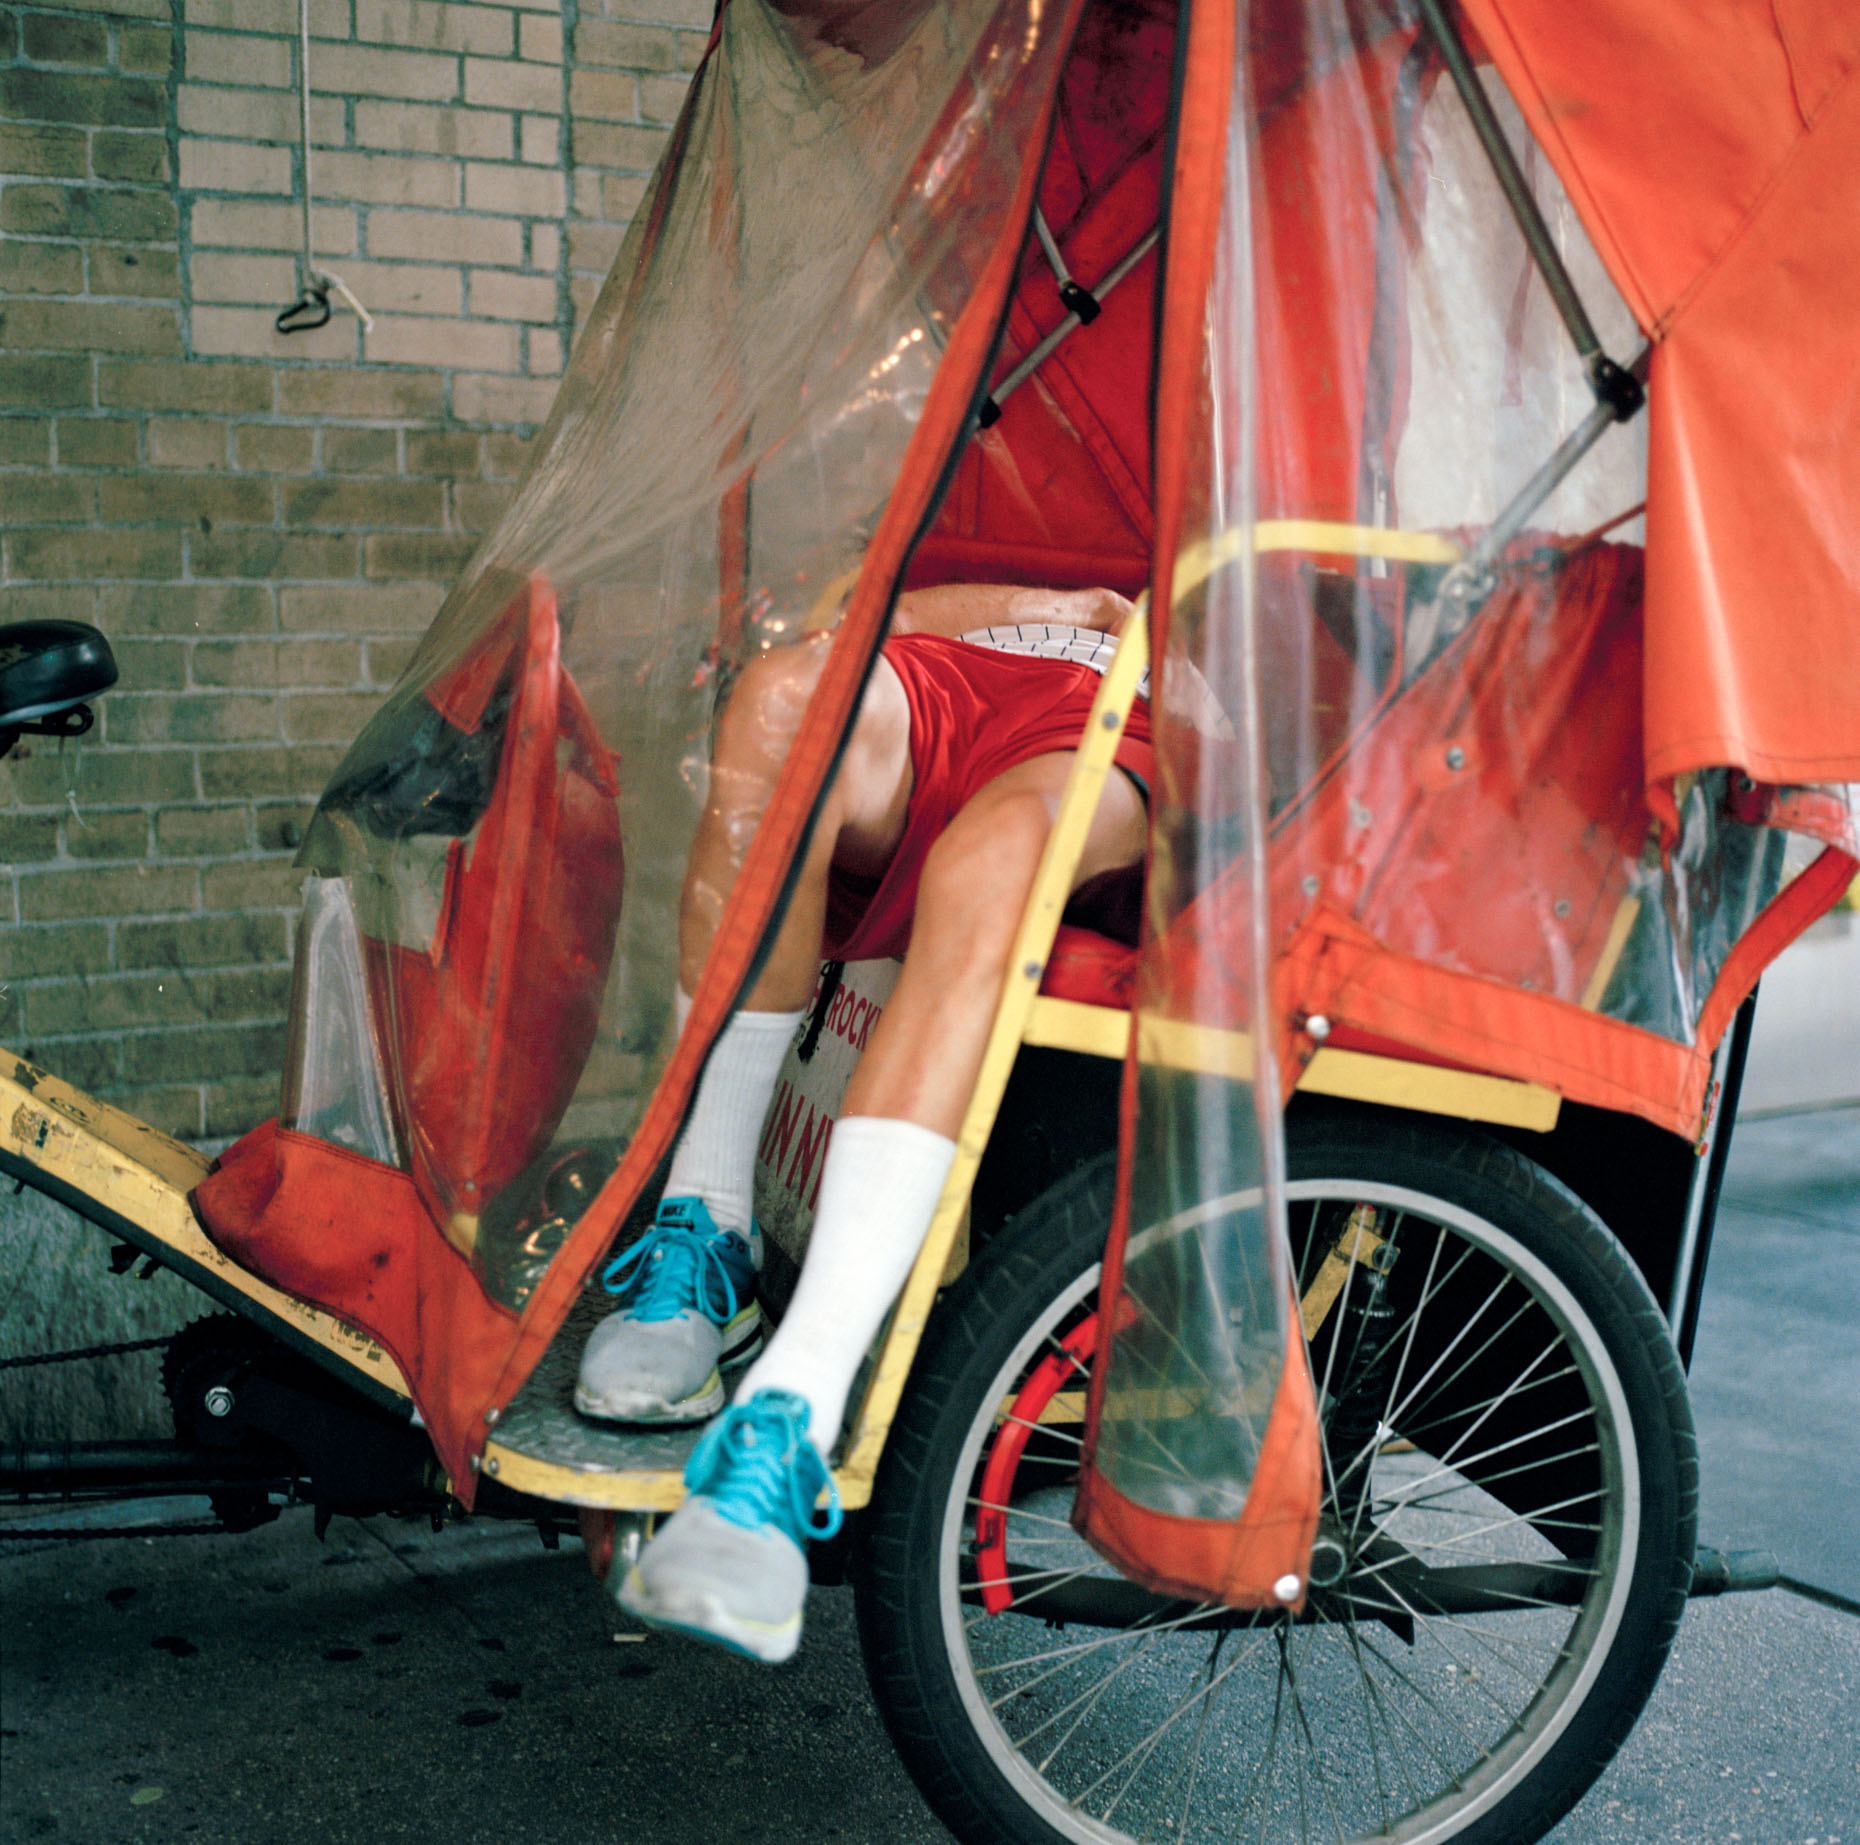 A color film photo of rickshaw rider takes a break on his Rickshaw in the Midtown Summer city heat in New York City,